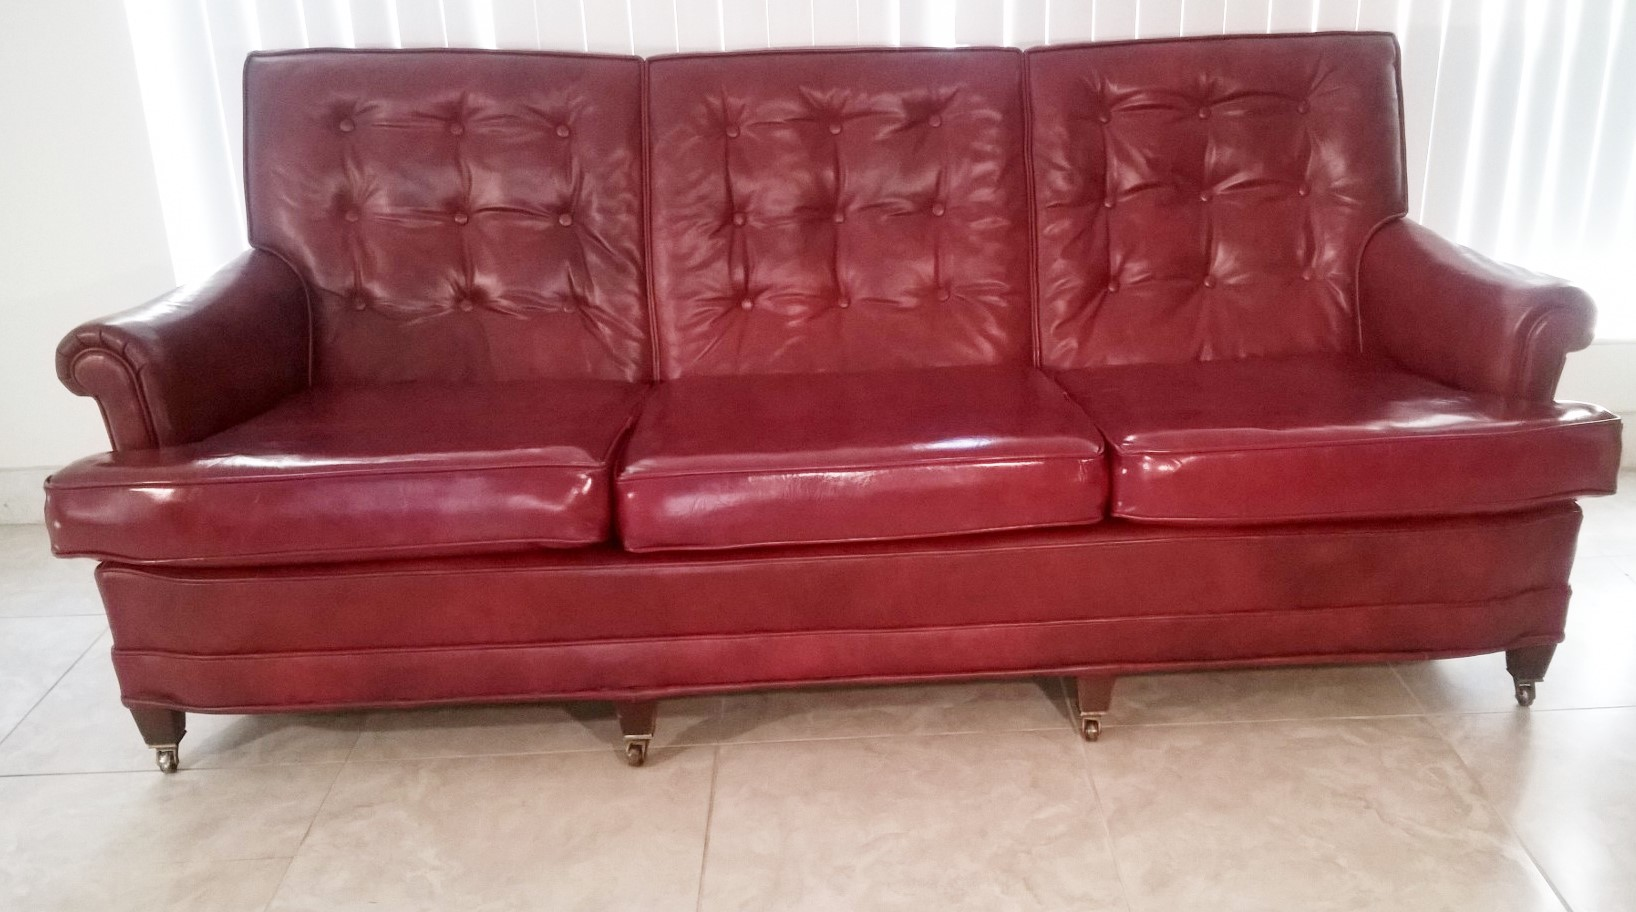 Retro Orange Vinyl Sofa Vintage Red Vinyl Sofa Vintage Vinyl Sofa Sleepers For In